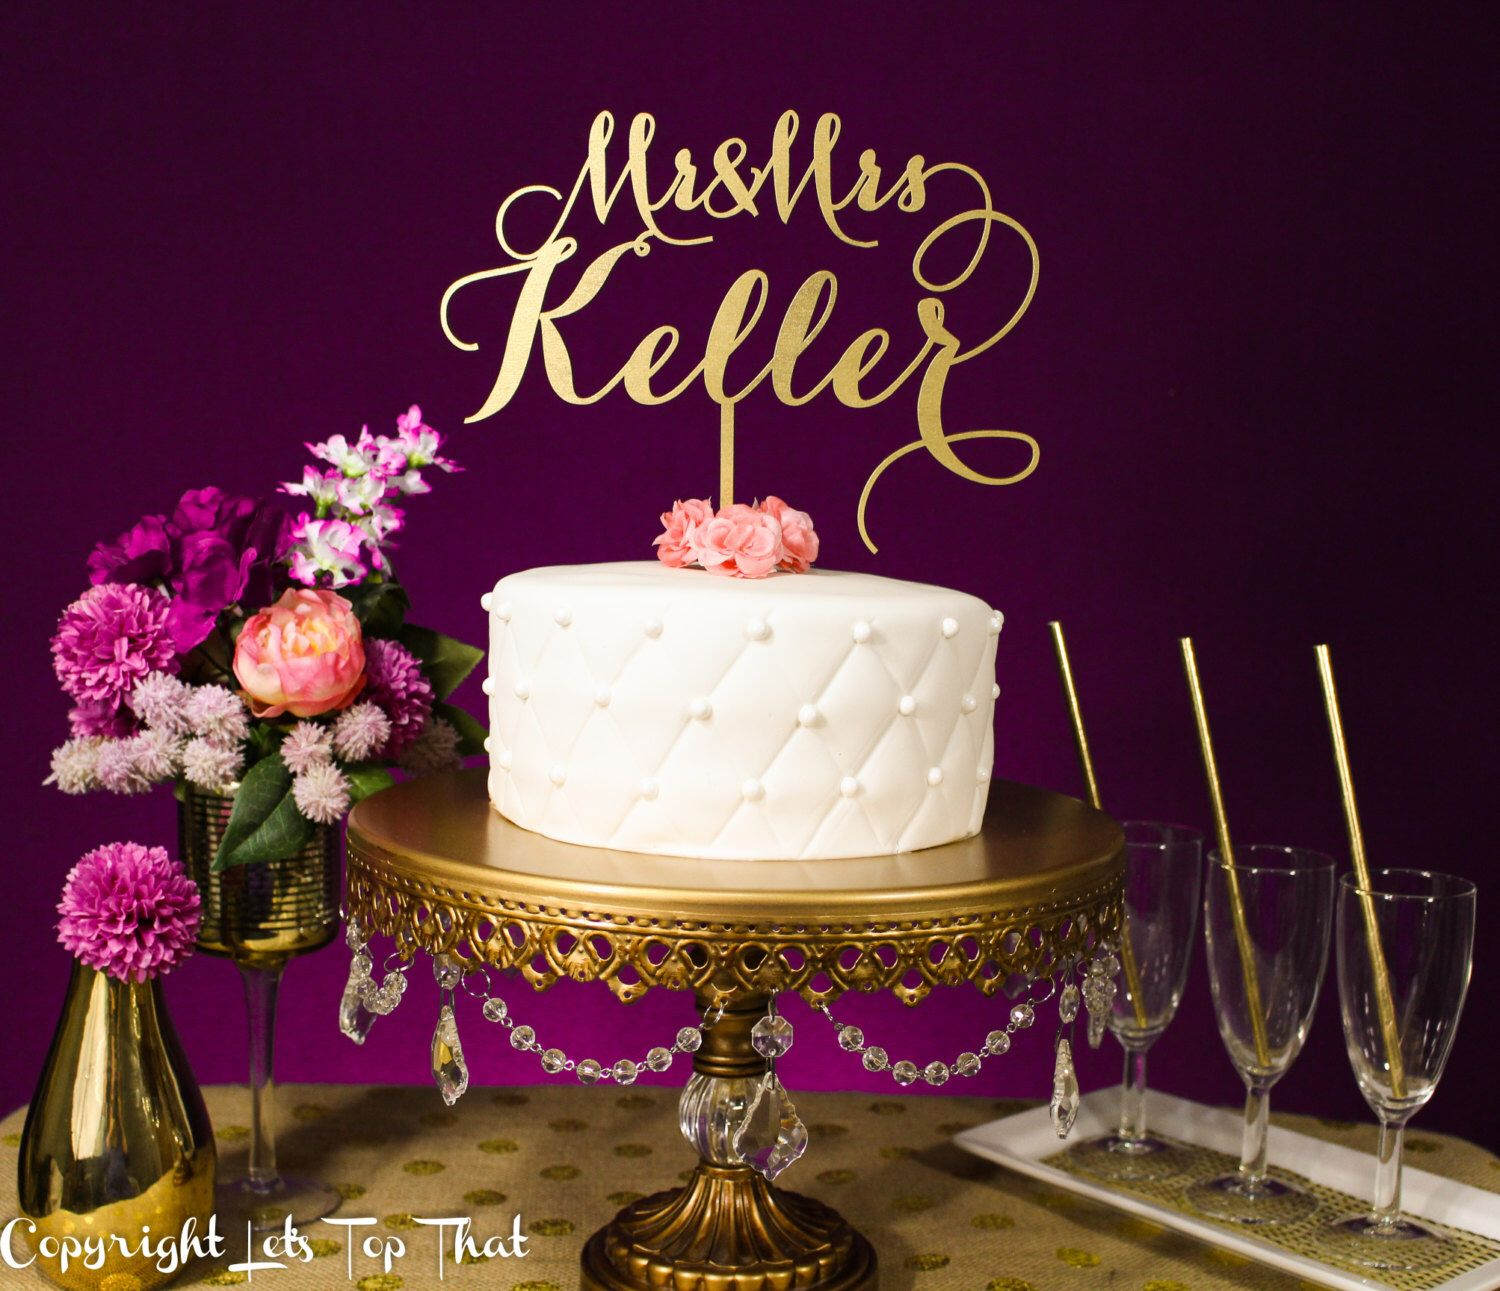 Wedding cake topper custom last name silver or gold metallic by